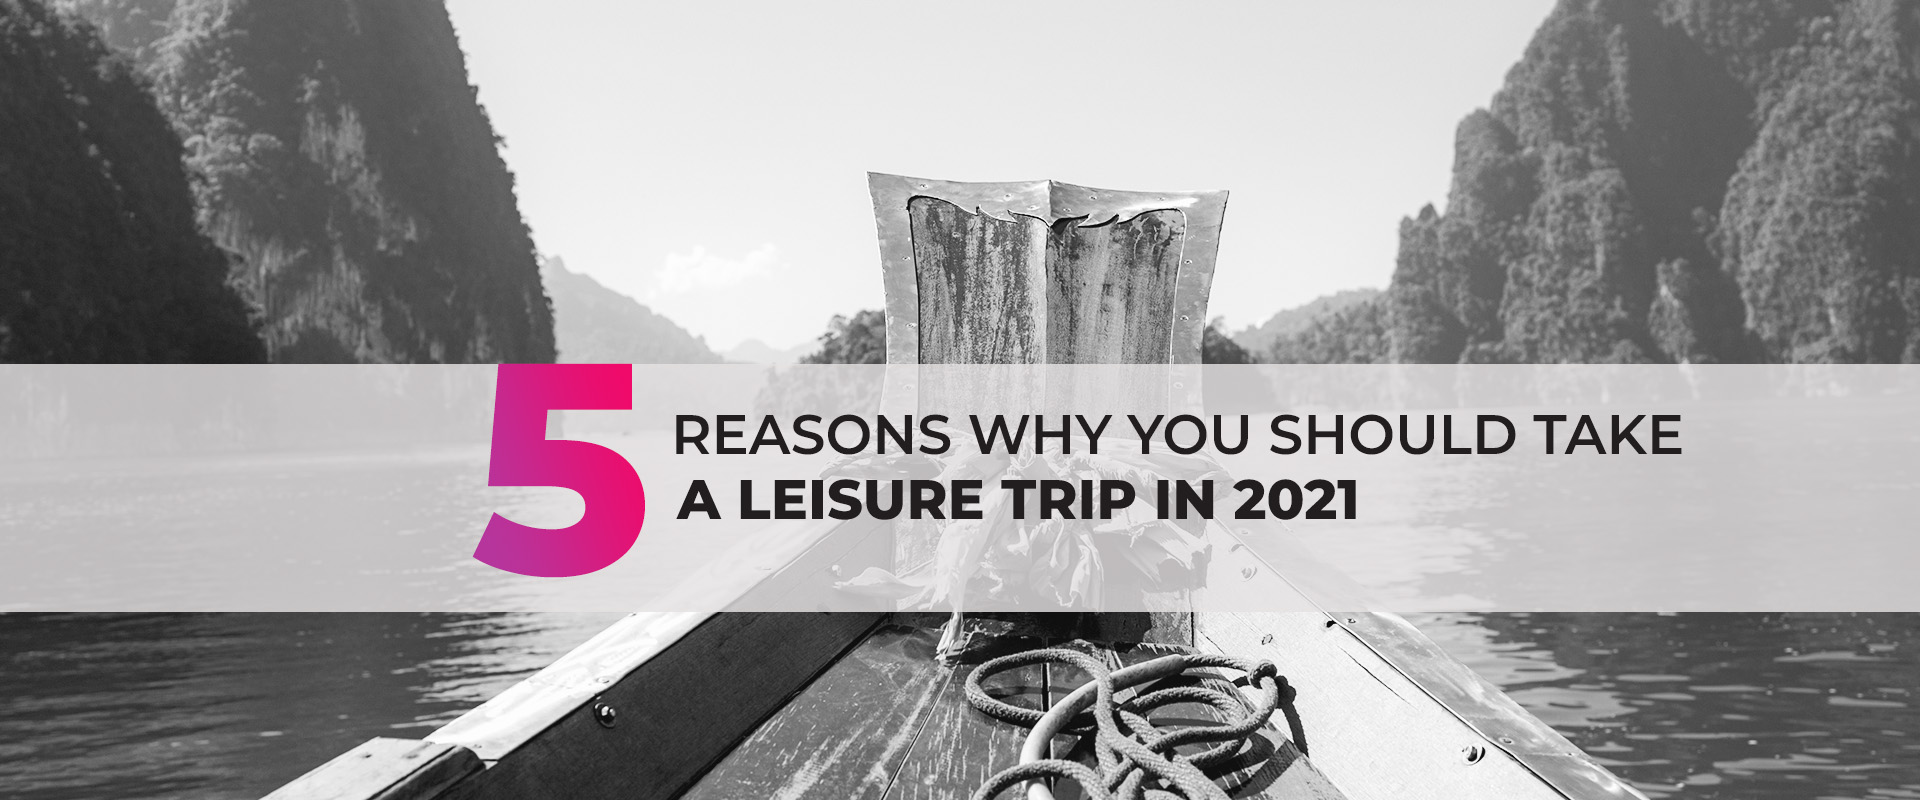 5 reasons why you should take a leisure trip in 2021